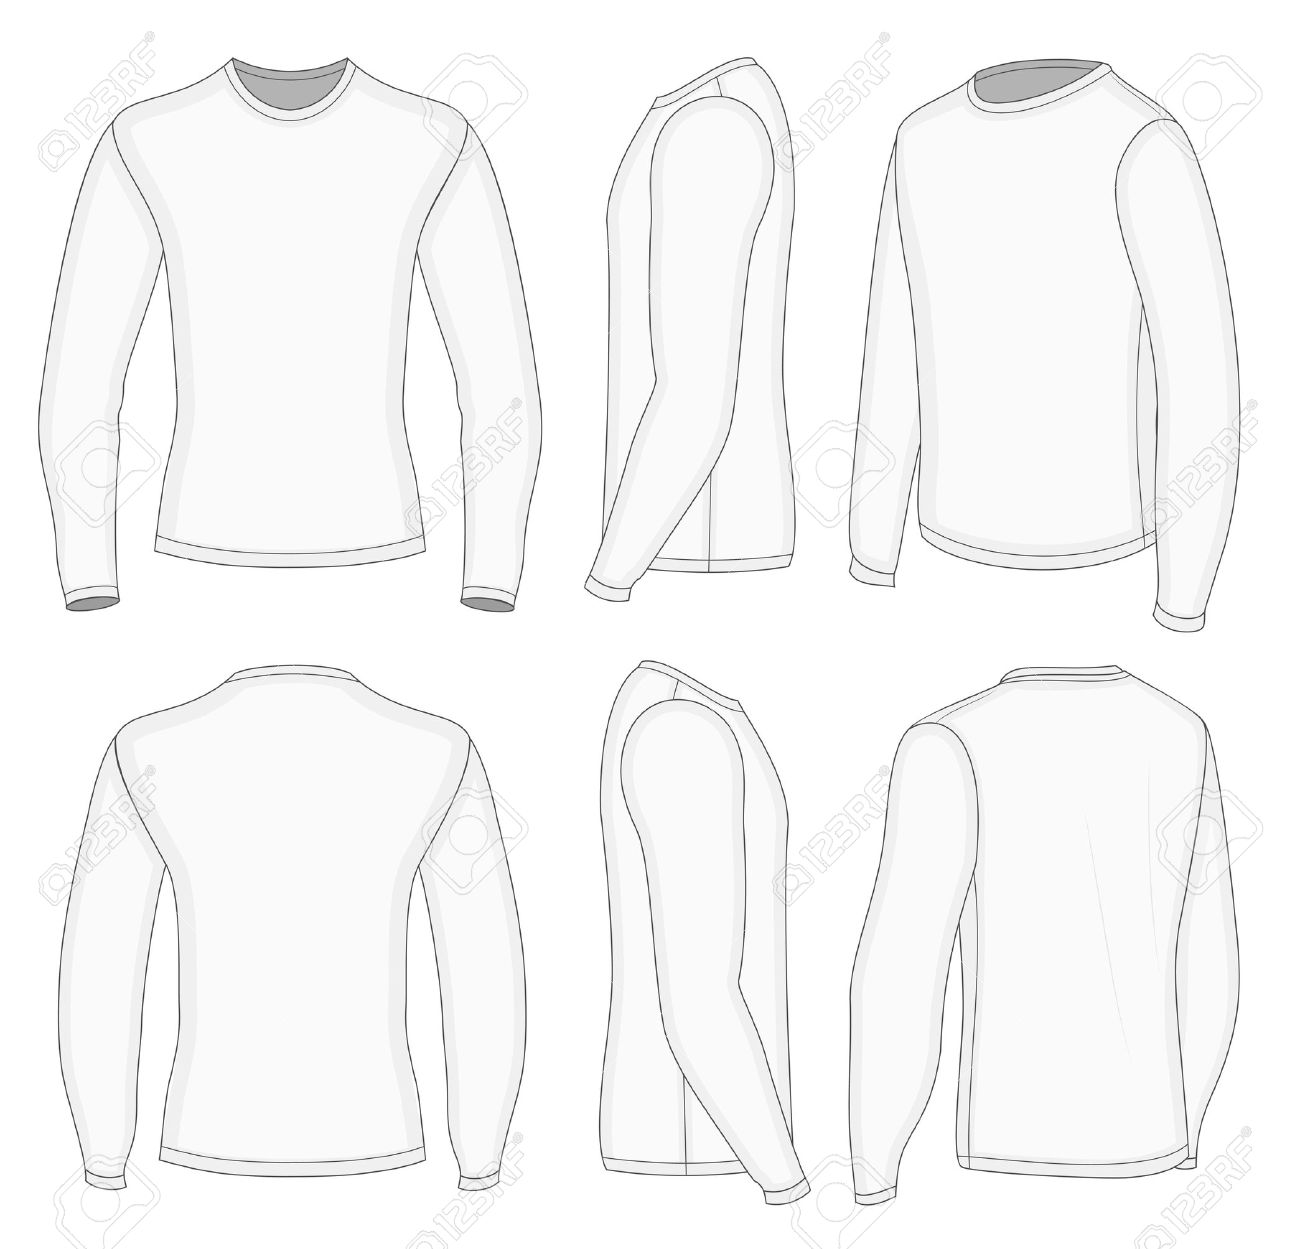 All Six Views Men's White Long Sleeve T-shirt Design Templates ...